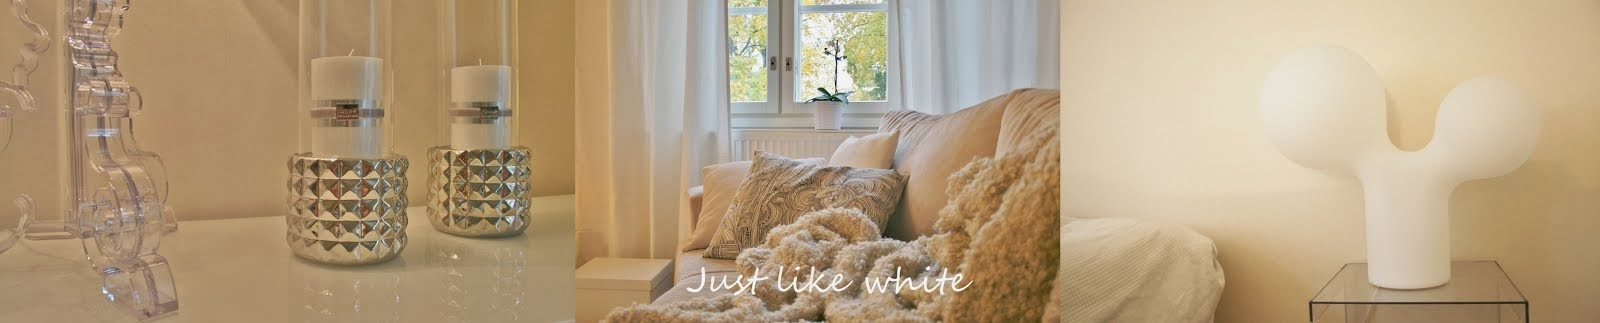 Just like white